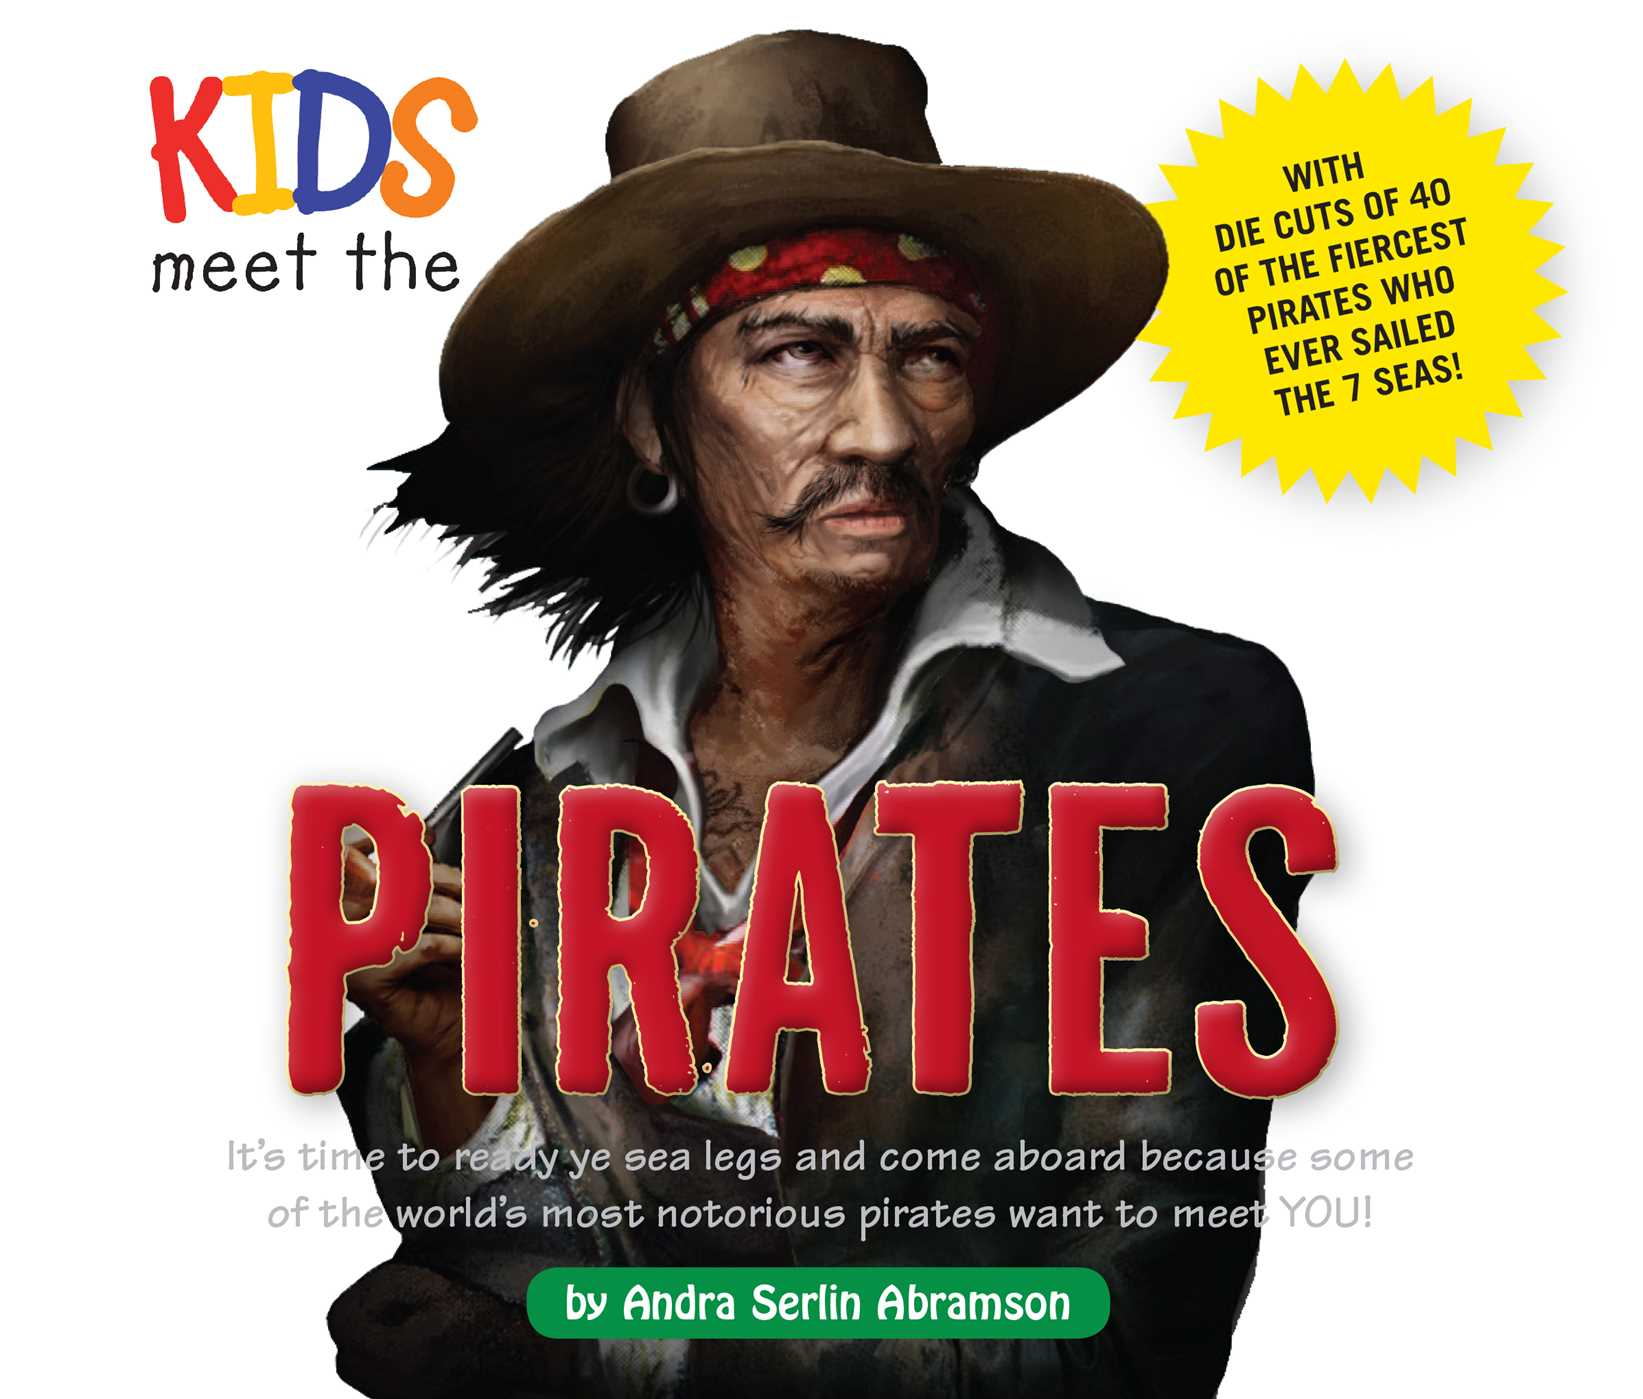 Kids-meet-the-pirates-9781604335101_hr